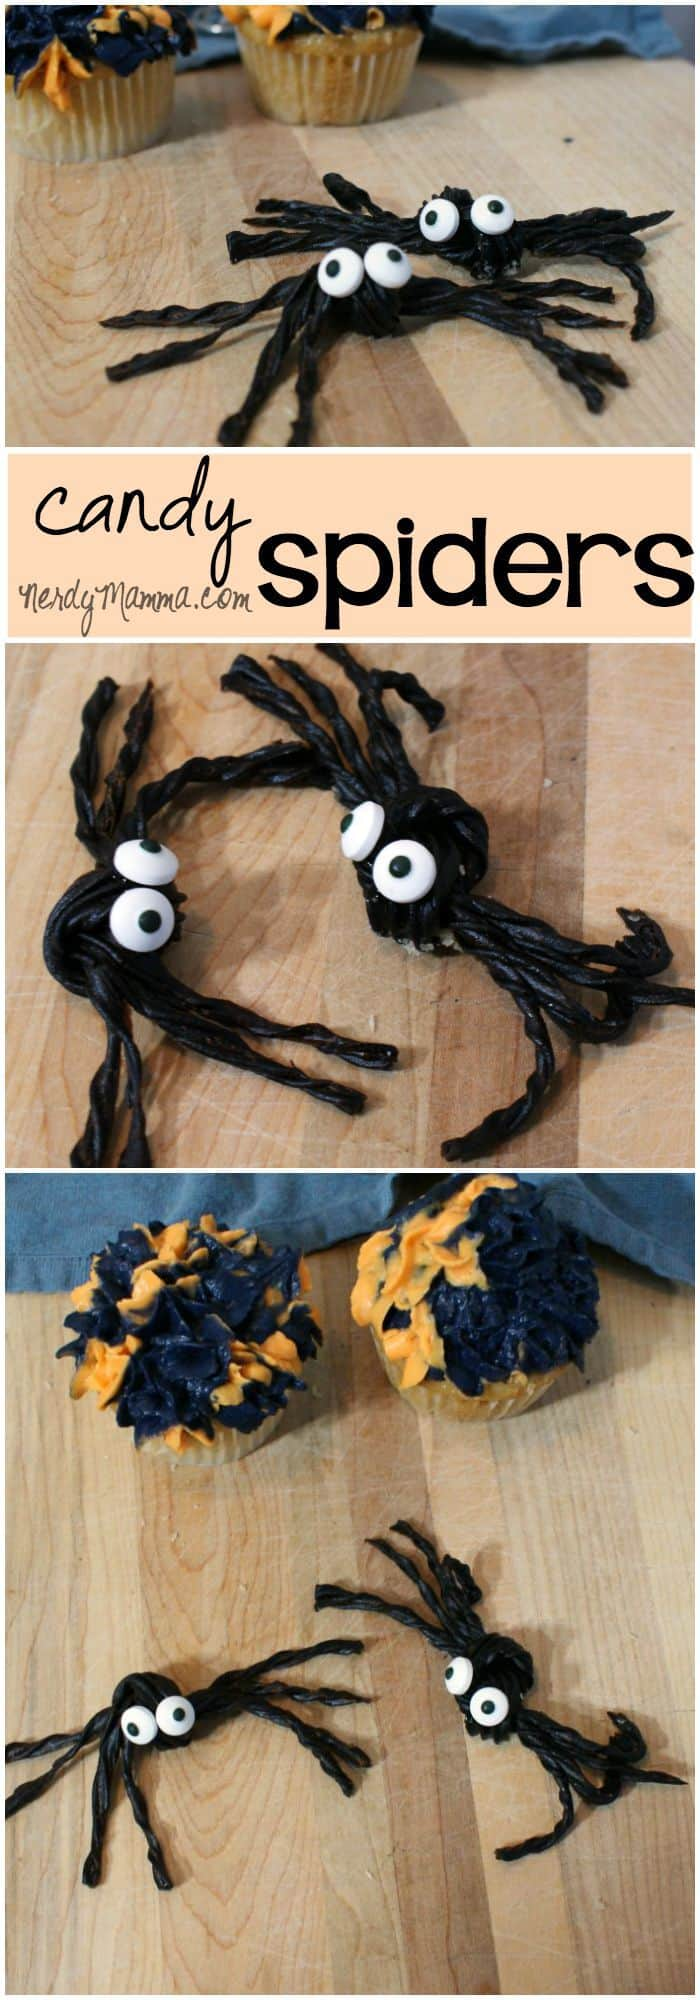 My son's class is really going to enjoy these spider candies. And they're so easy--I'm really going to enjoy making them.